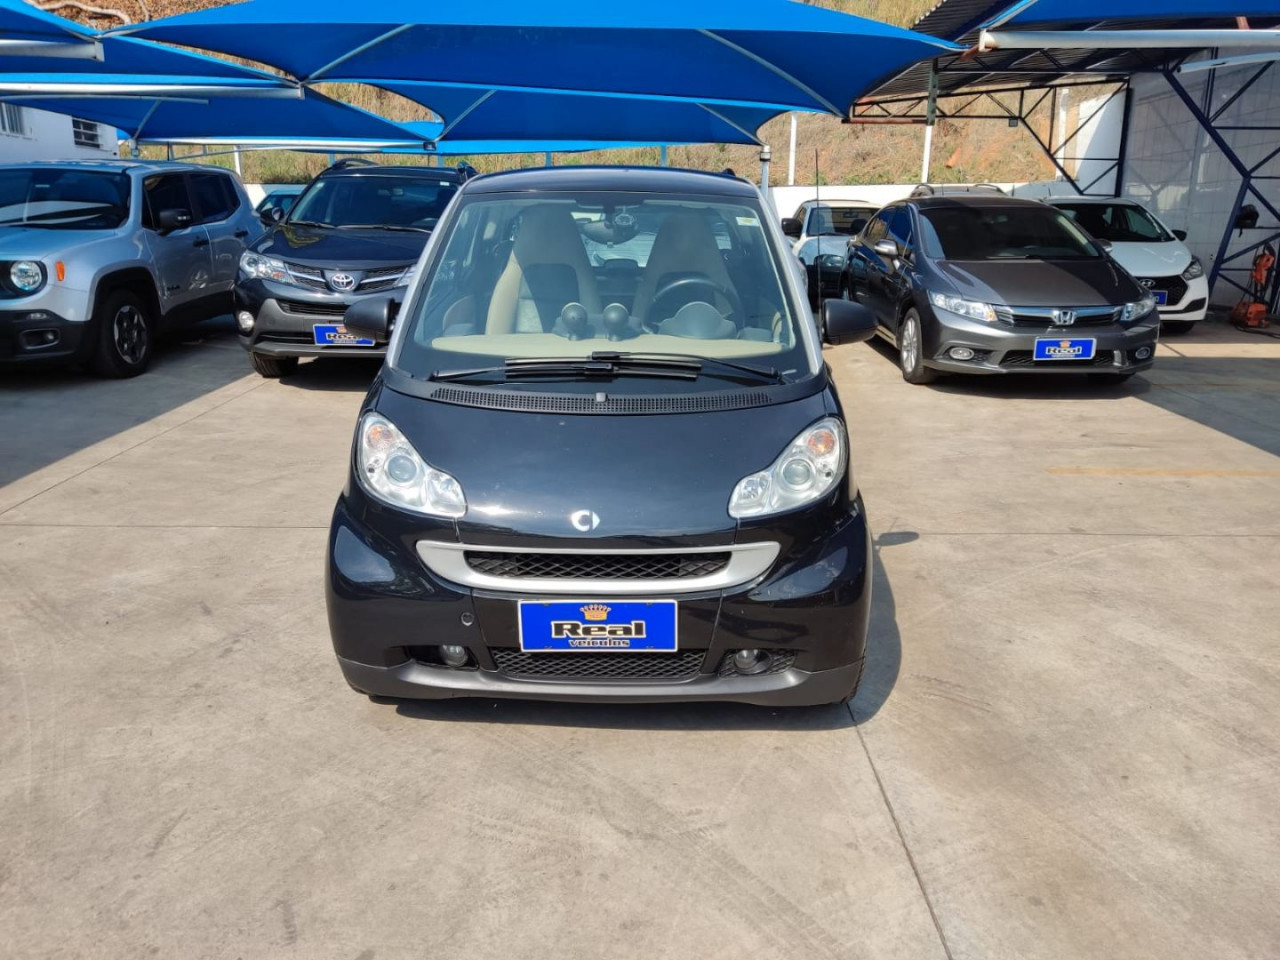 Fortwo 1.0 MHD COUPÉ 3 CILINDROS AUTOMÁTICO